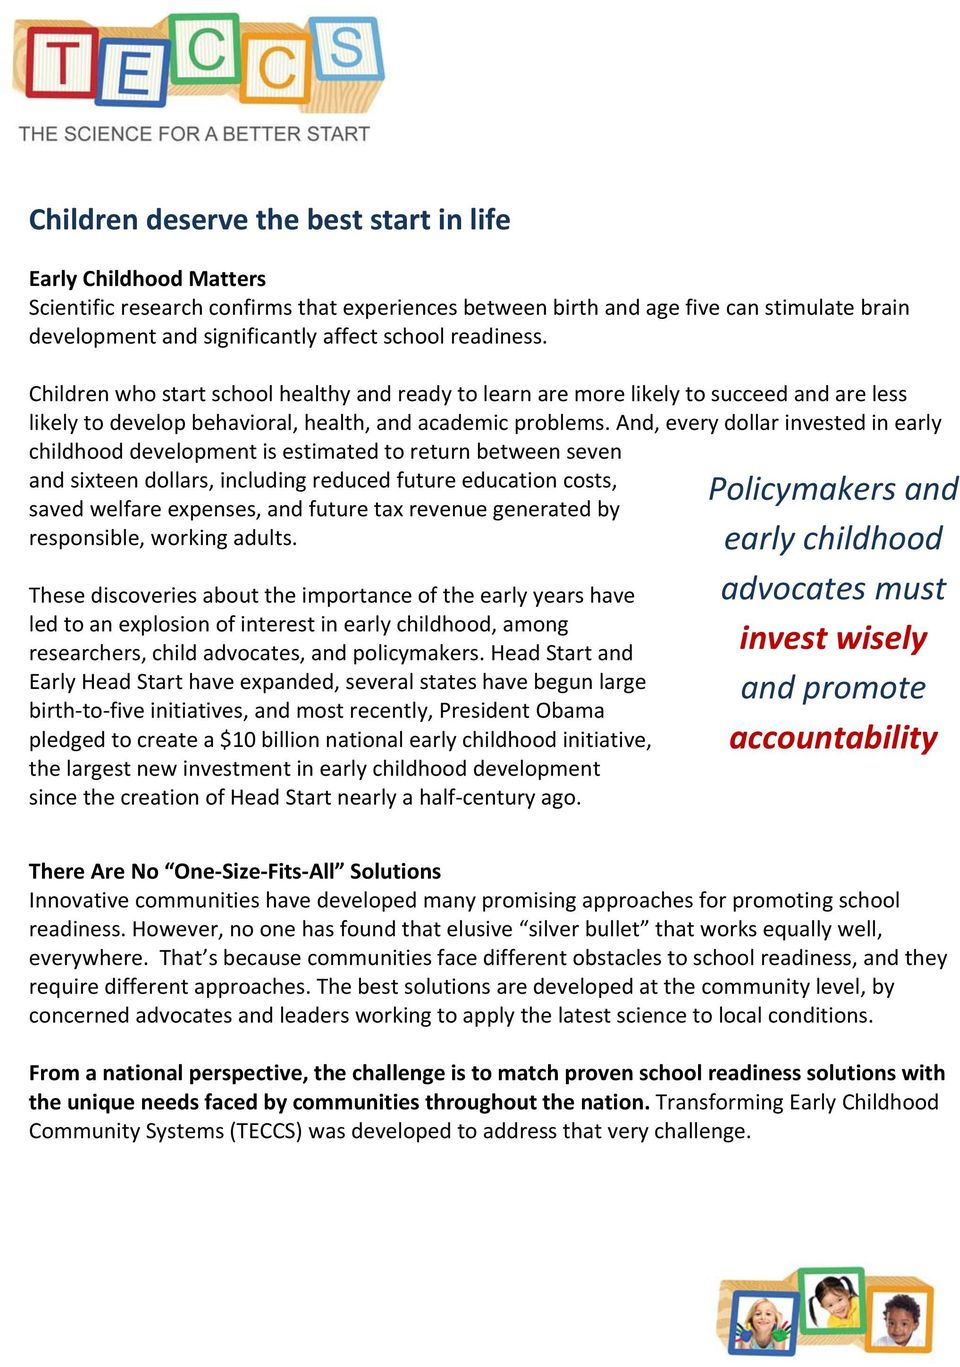 And, every dollar invested in early childhood development is estimated to return between seven and sixteen dollars, including reduced future education costs, saved welfare expenses, and future tax